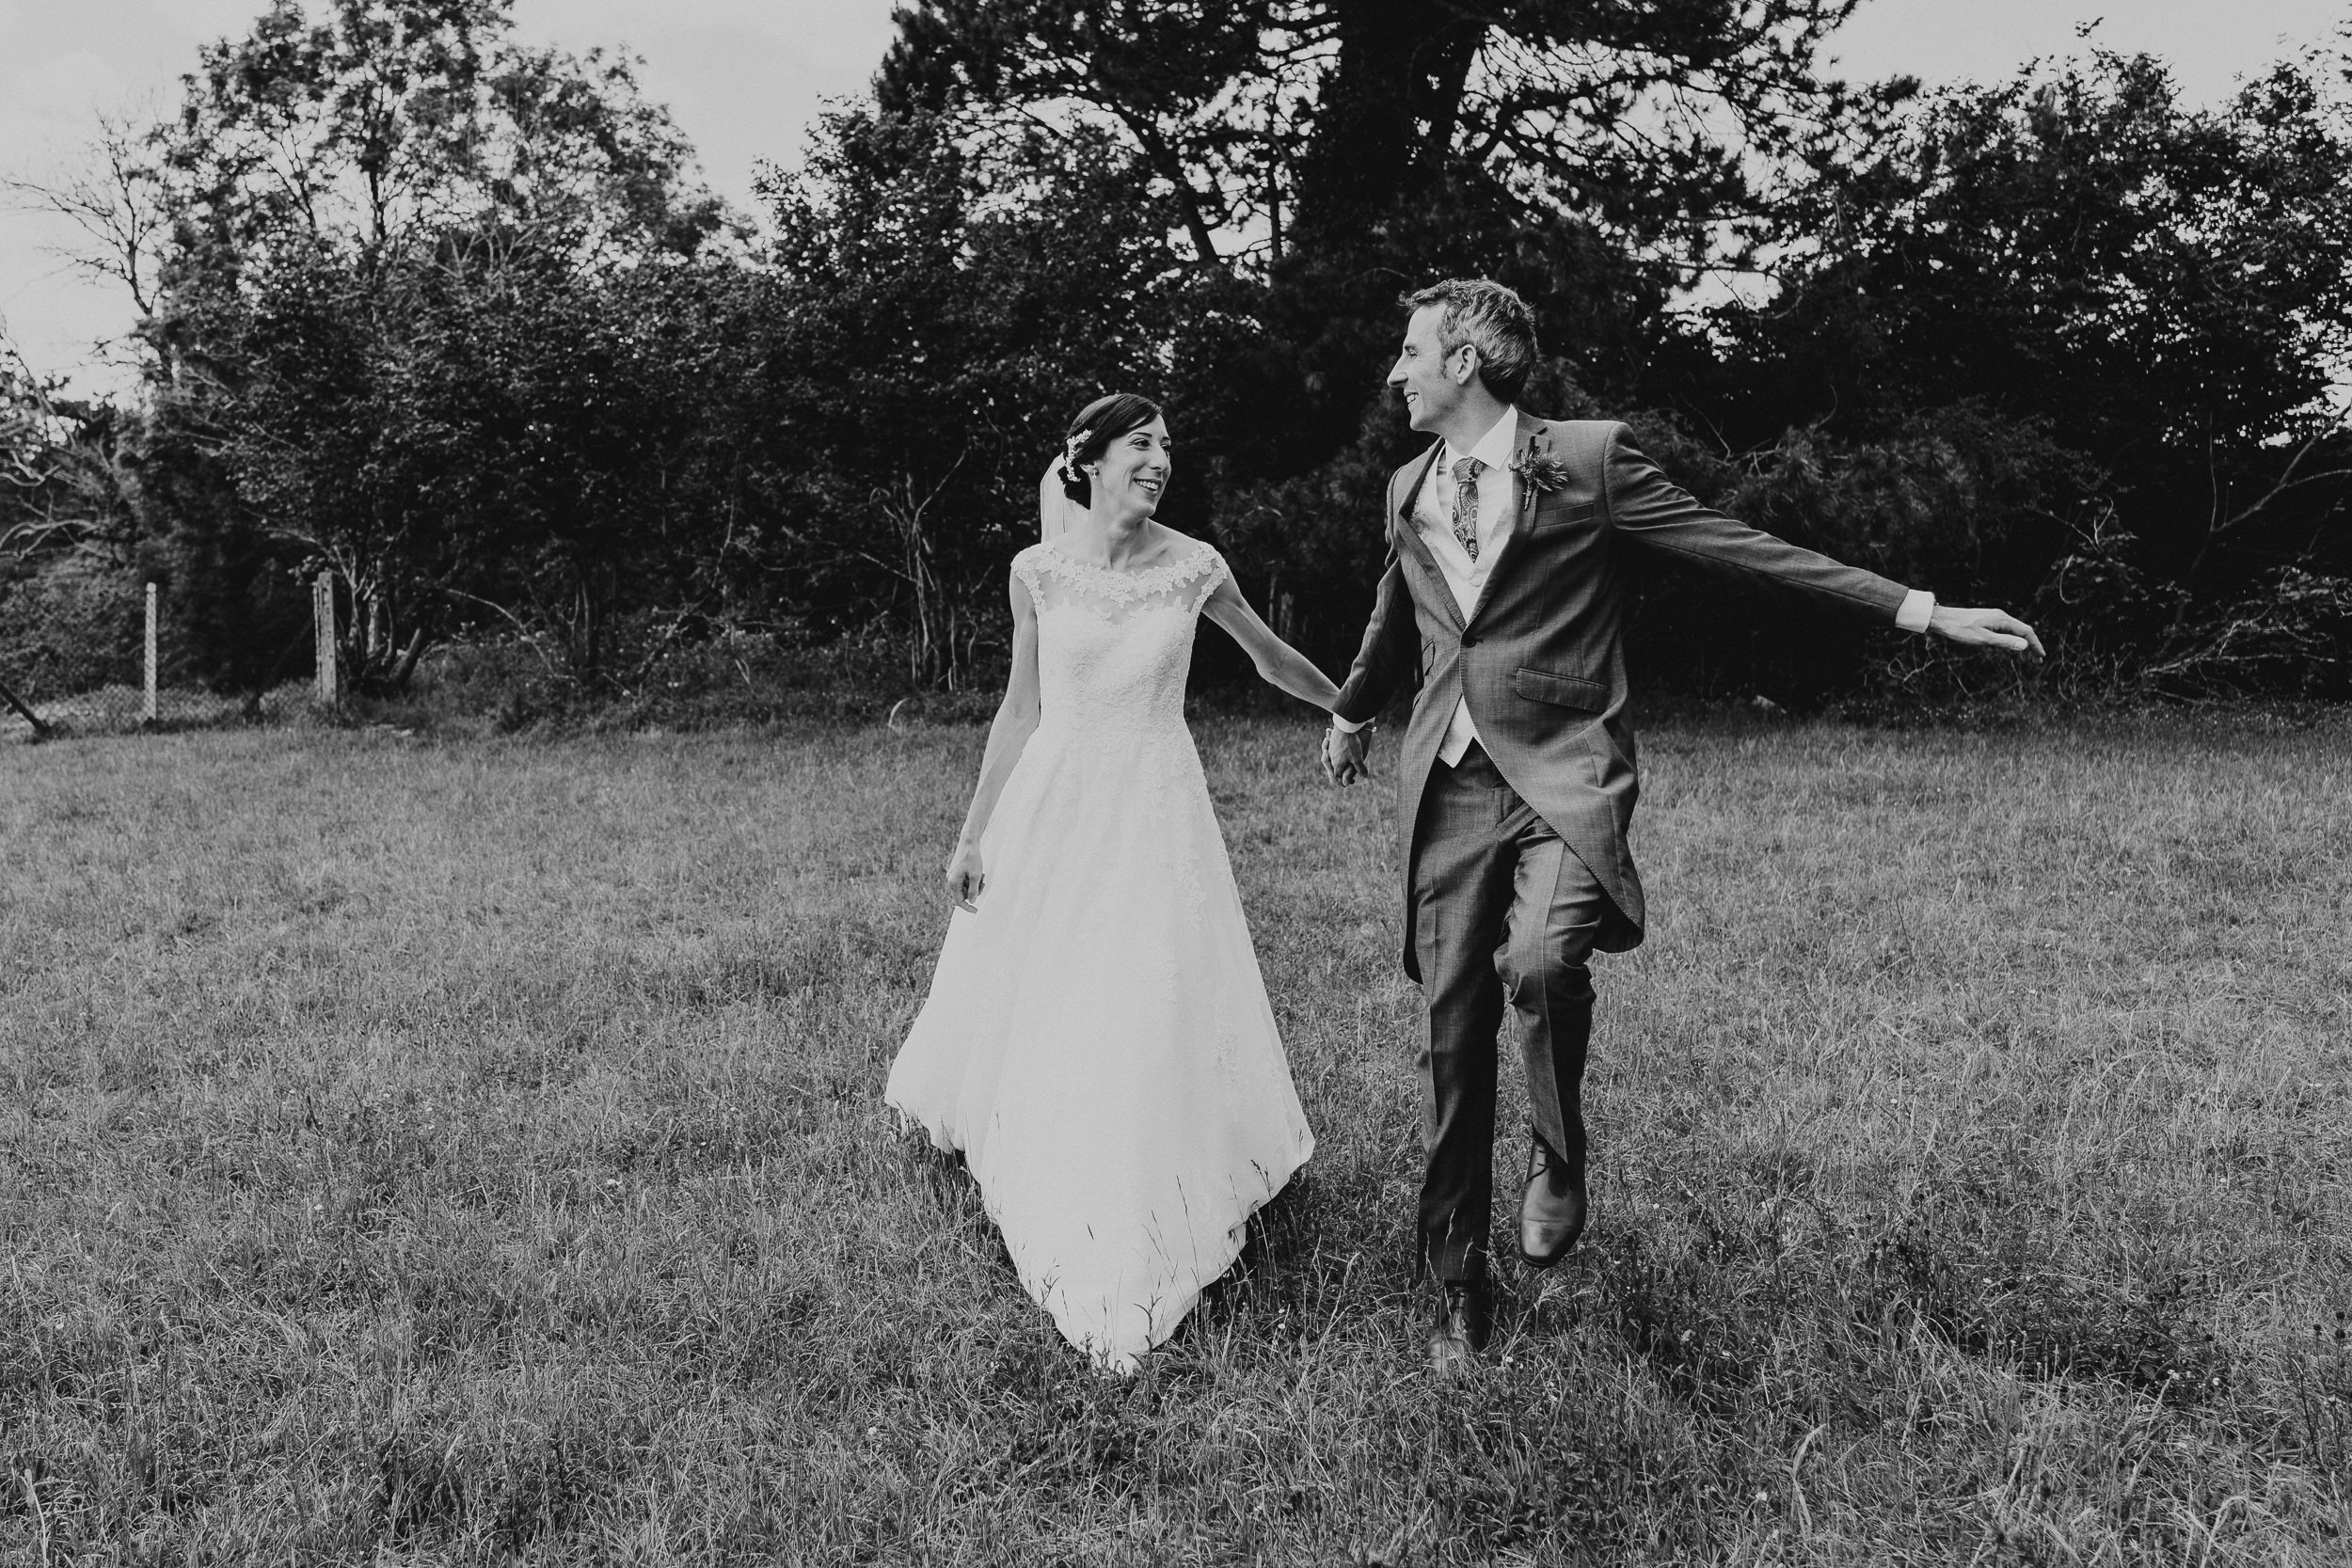 The Bride and Groom dancing on Clifton Downs